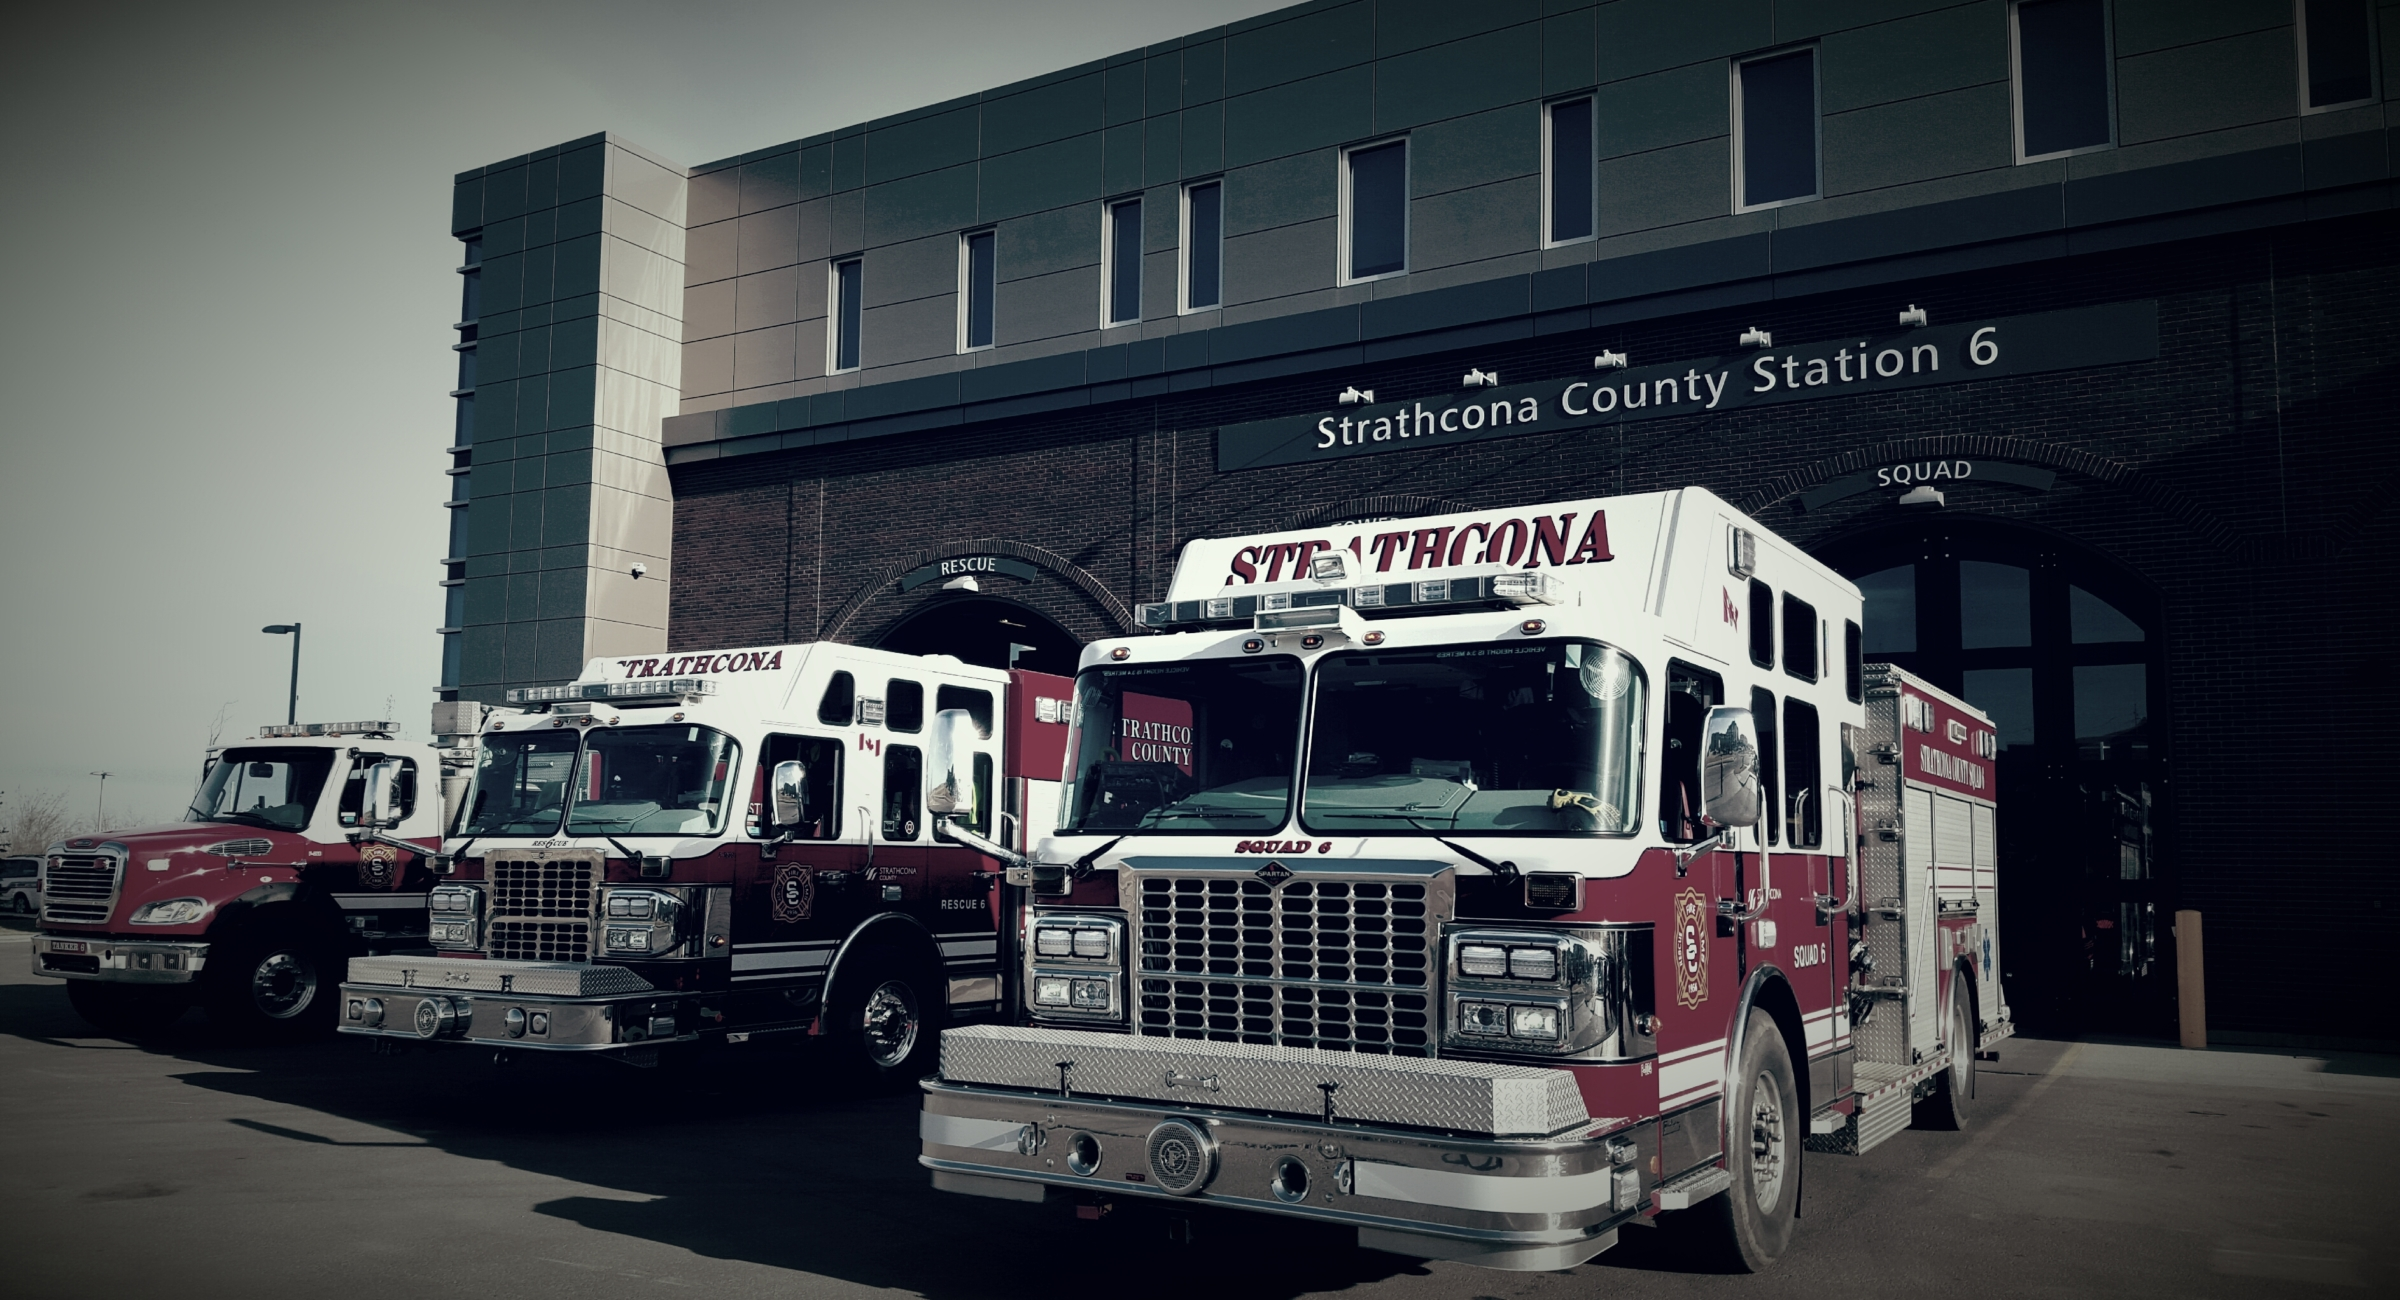 Strathcona, Strathcona County Emergency Services, Fire Truck, Station 6, Strathcona County Firefighters